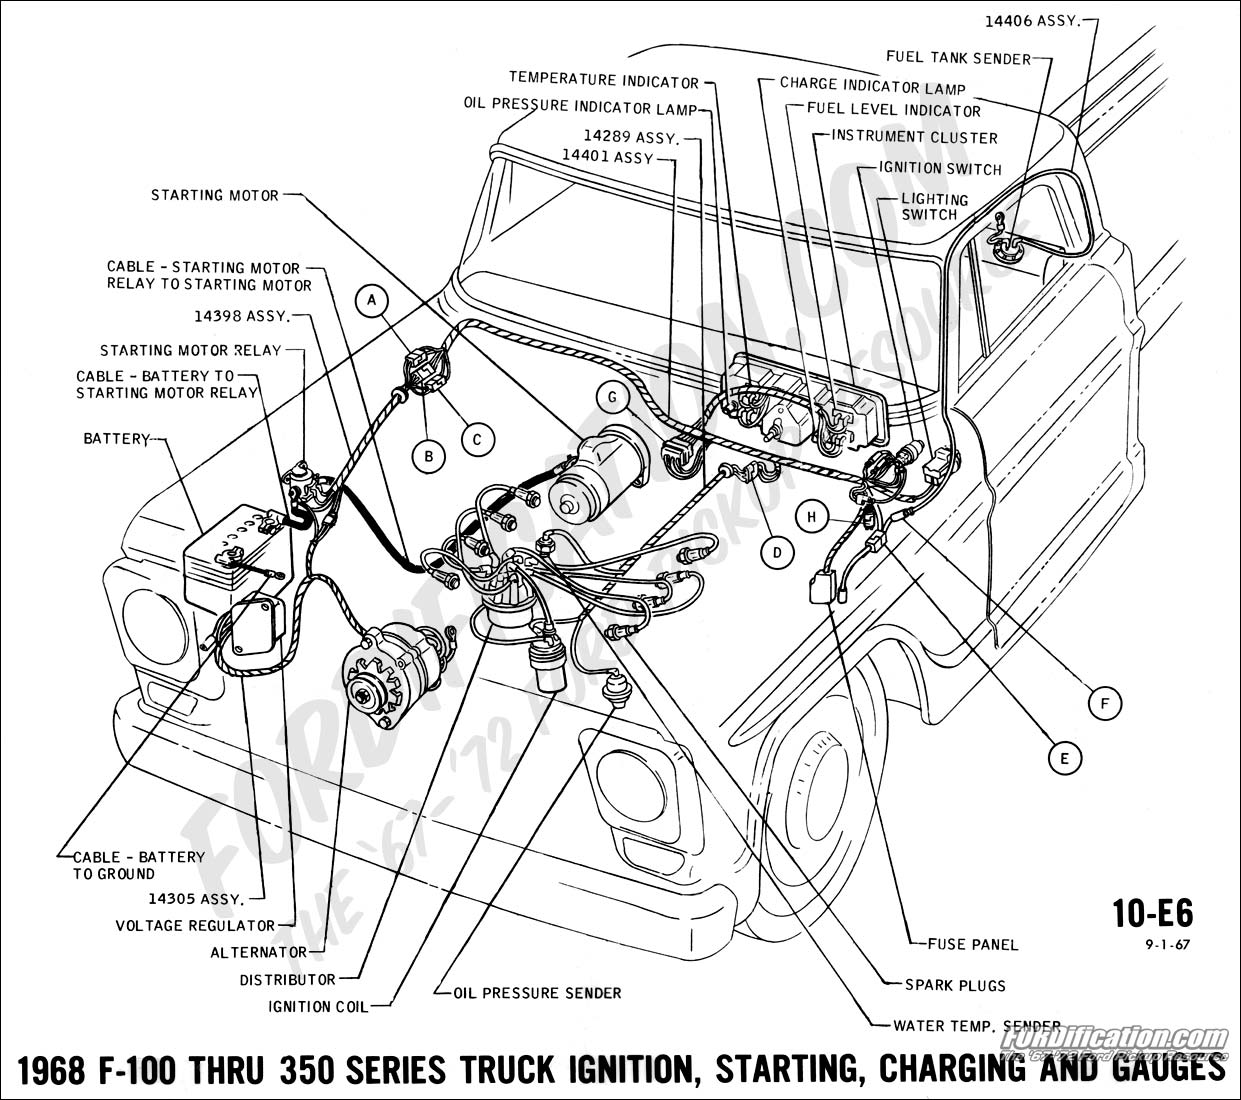 1970 Camaro Dimmer Switch Schematic Circuit Diagram - Data Wiring ...